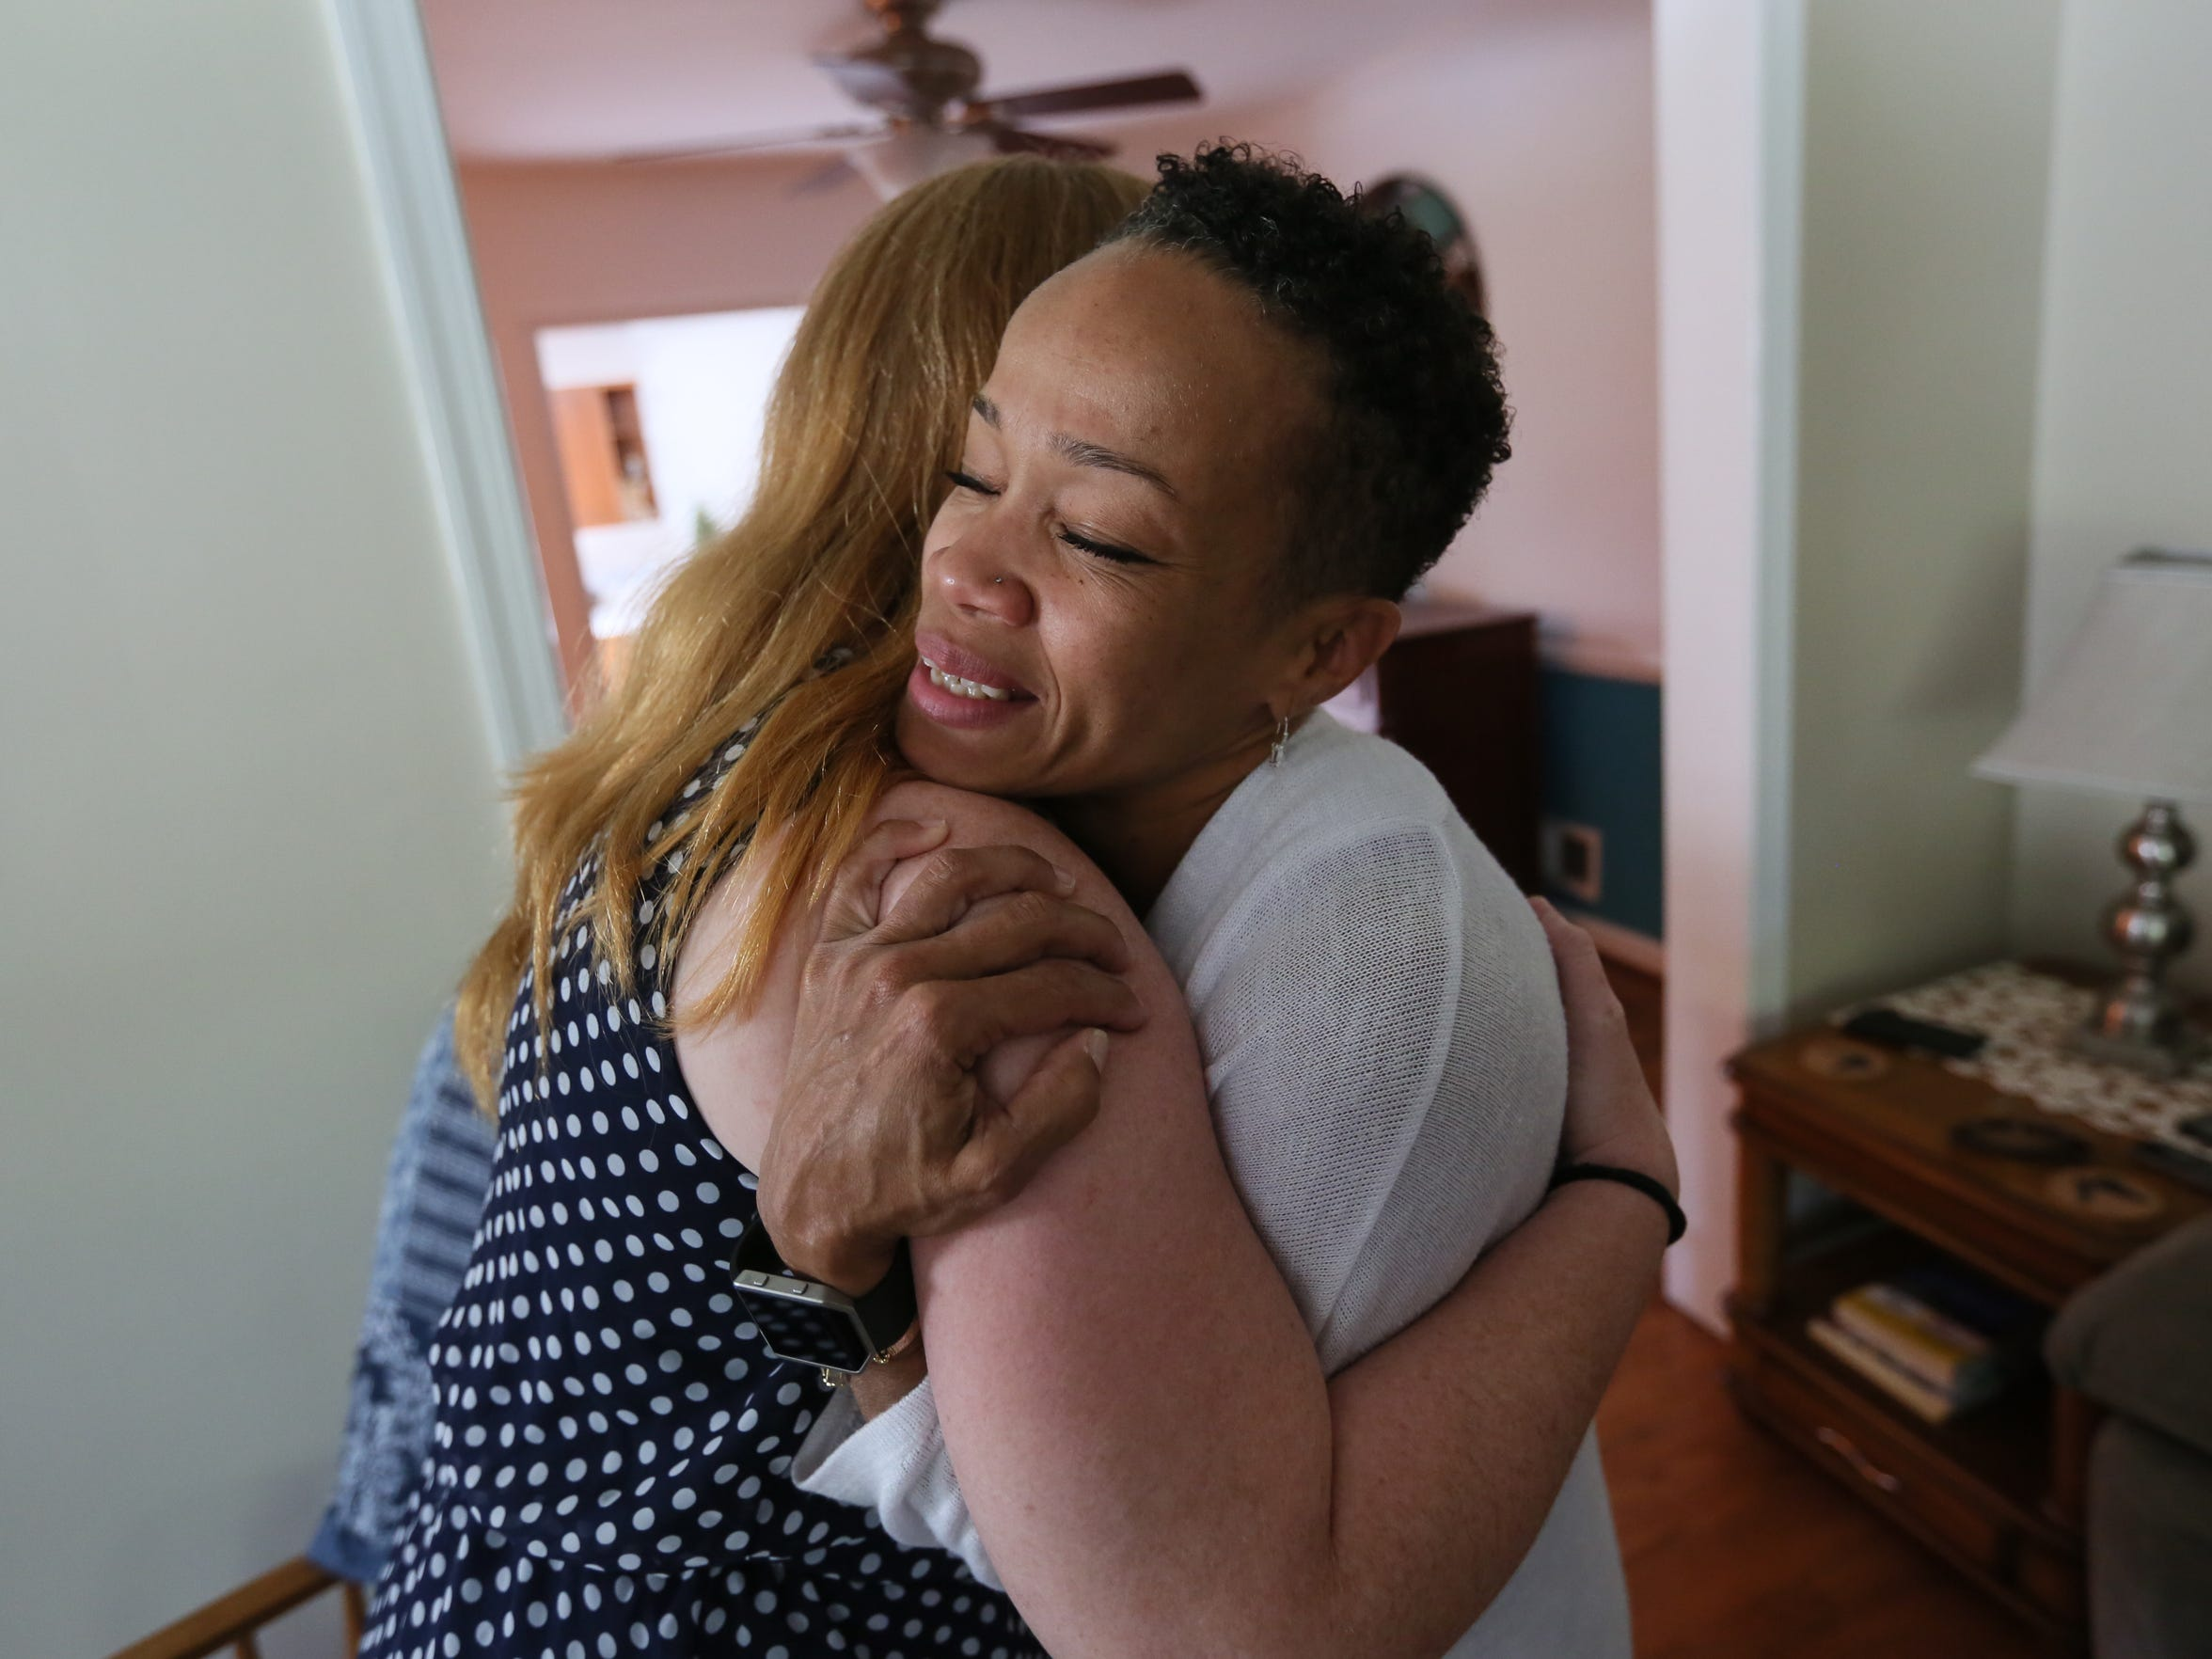 Karen Harris (right), director of Kim's Place, a new sober living home in Elsmere, gives a hug to Samantha, who wanted only her first name used. Samantha is staying in the house during her journey to recovery.